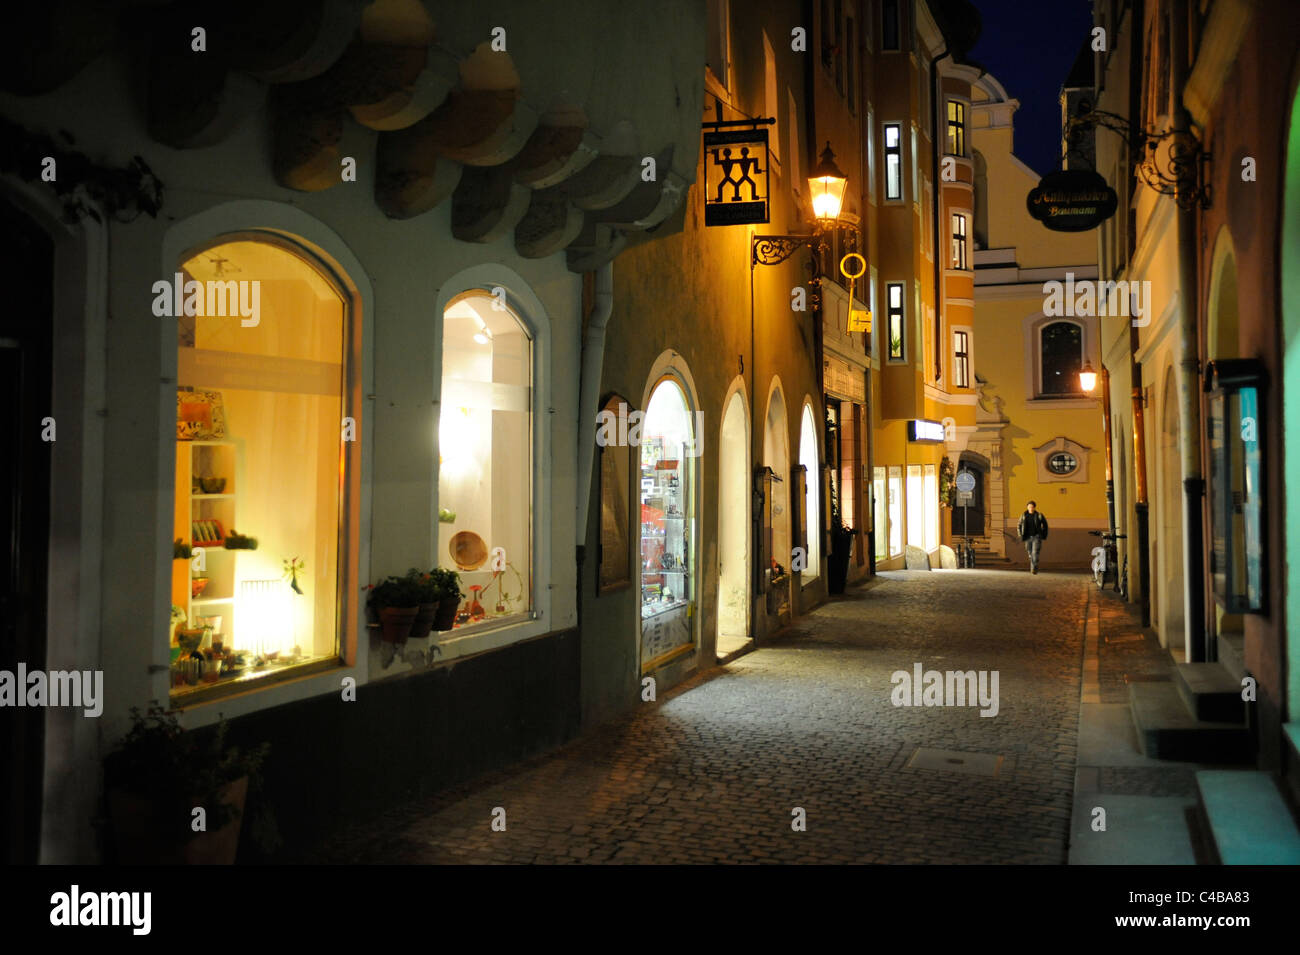 ancient city regensburg in germany with shopping street at night stock photo royalty free image. Black Bedroom Furniture Sets. Home Design Ideas